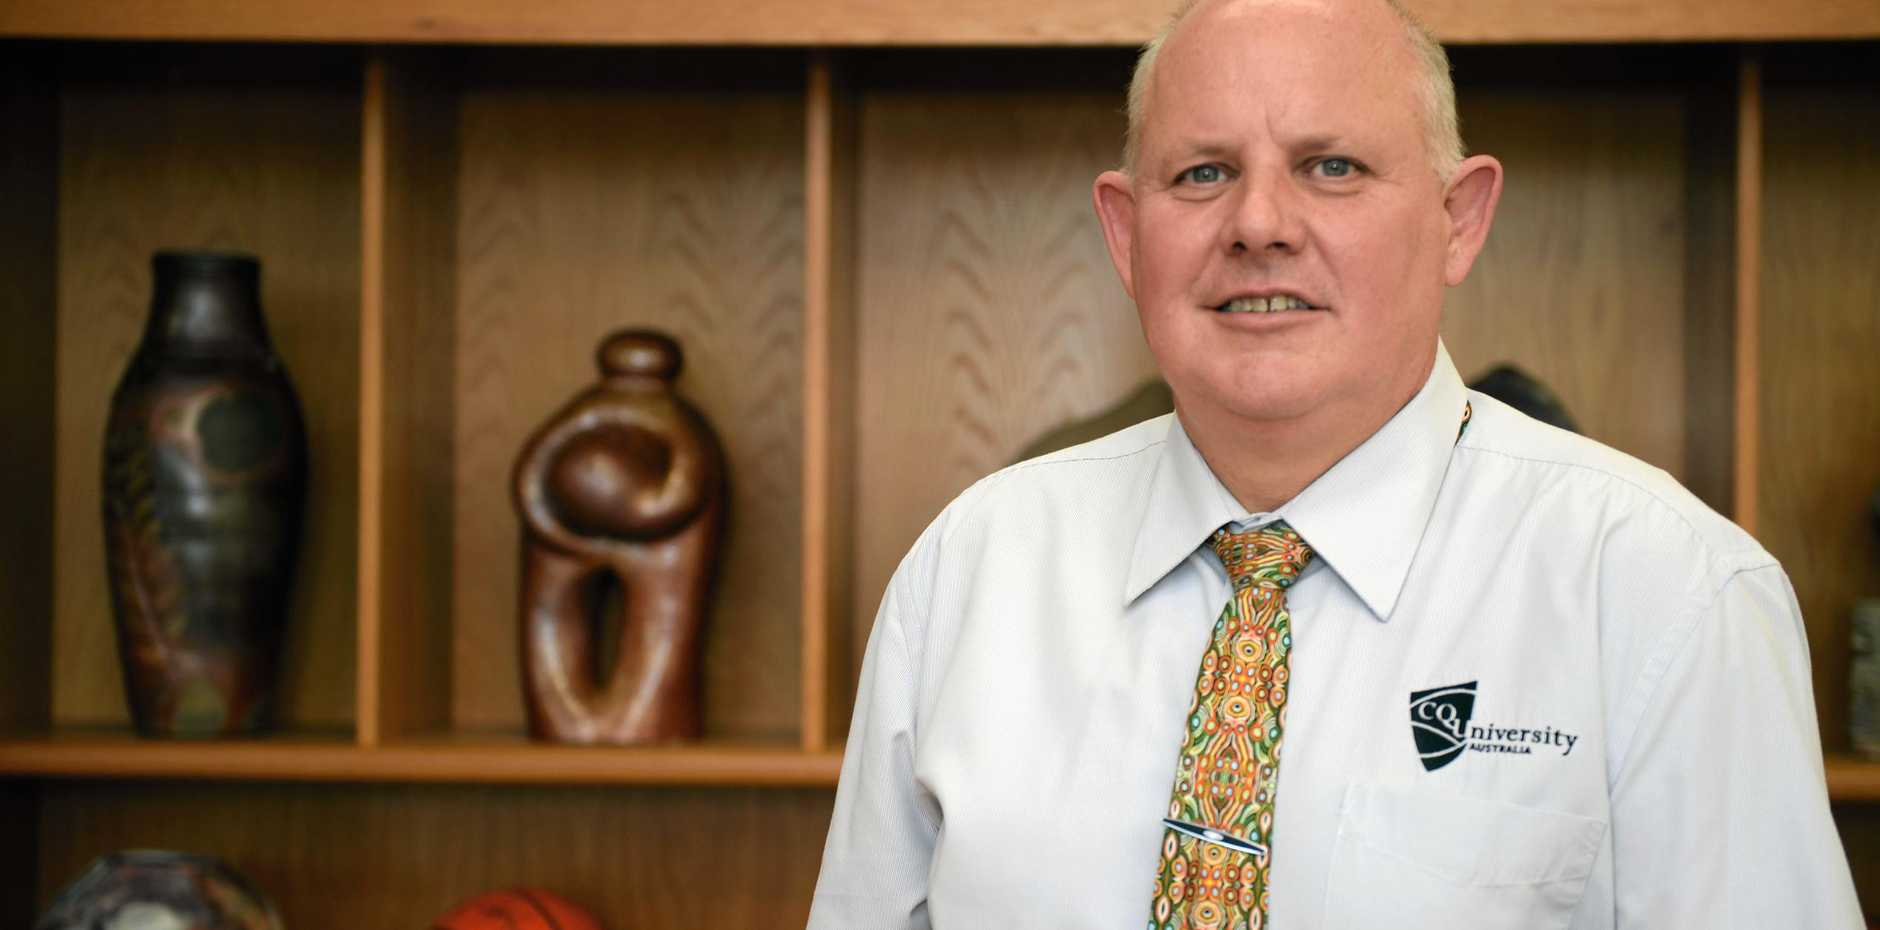 NOT HAPPY: CQ University Vice Chancellor Professor Scott Bowman believes his university has received a raw deal from the Federal Government with the university funding freeze set to hit CQUniversity the hardest and capital city universities the least.